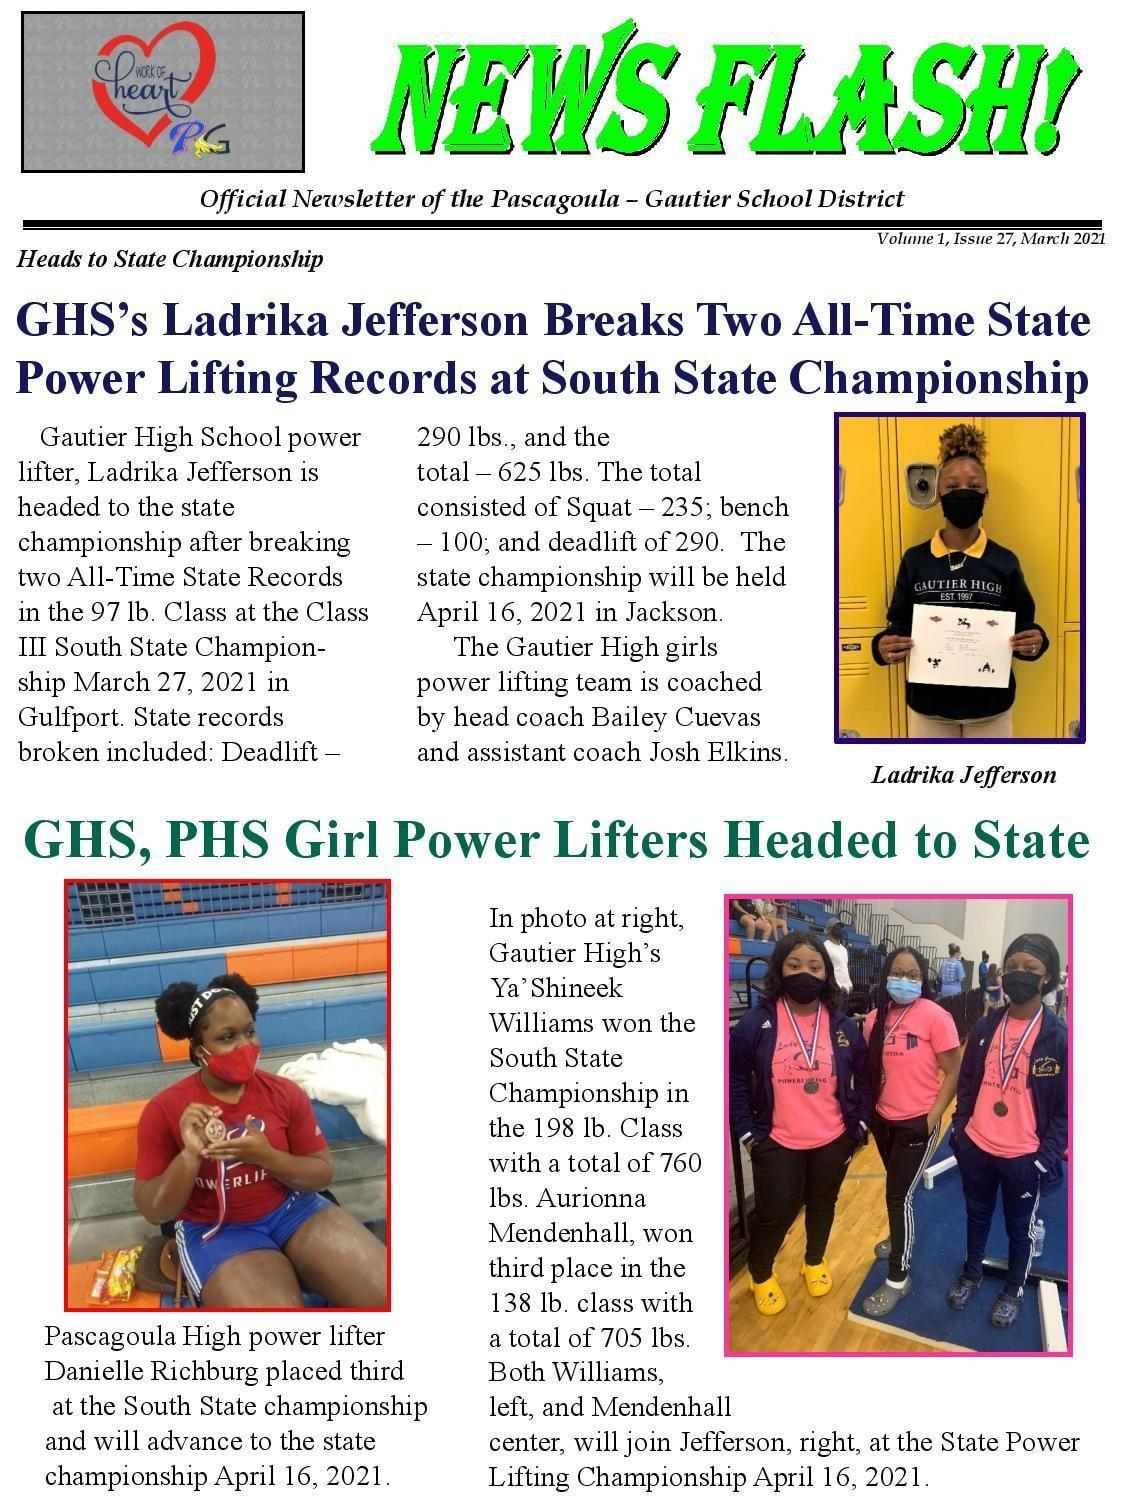 GHS Ladrika Jefferson Breaks Two All Time State Power Lifting Records